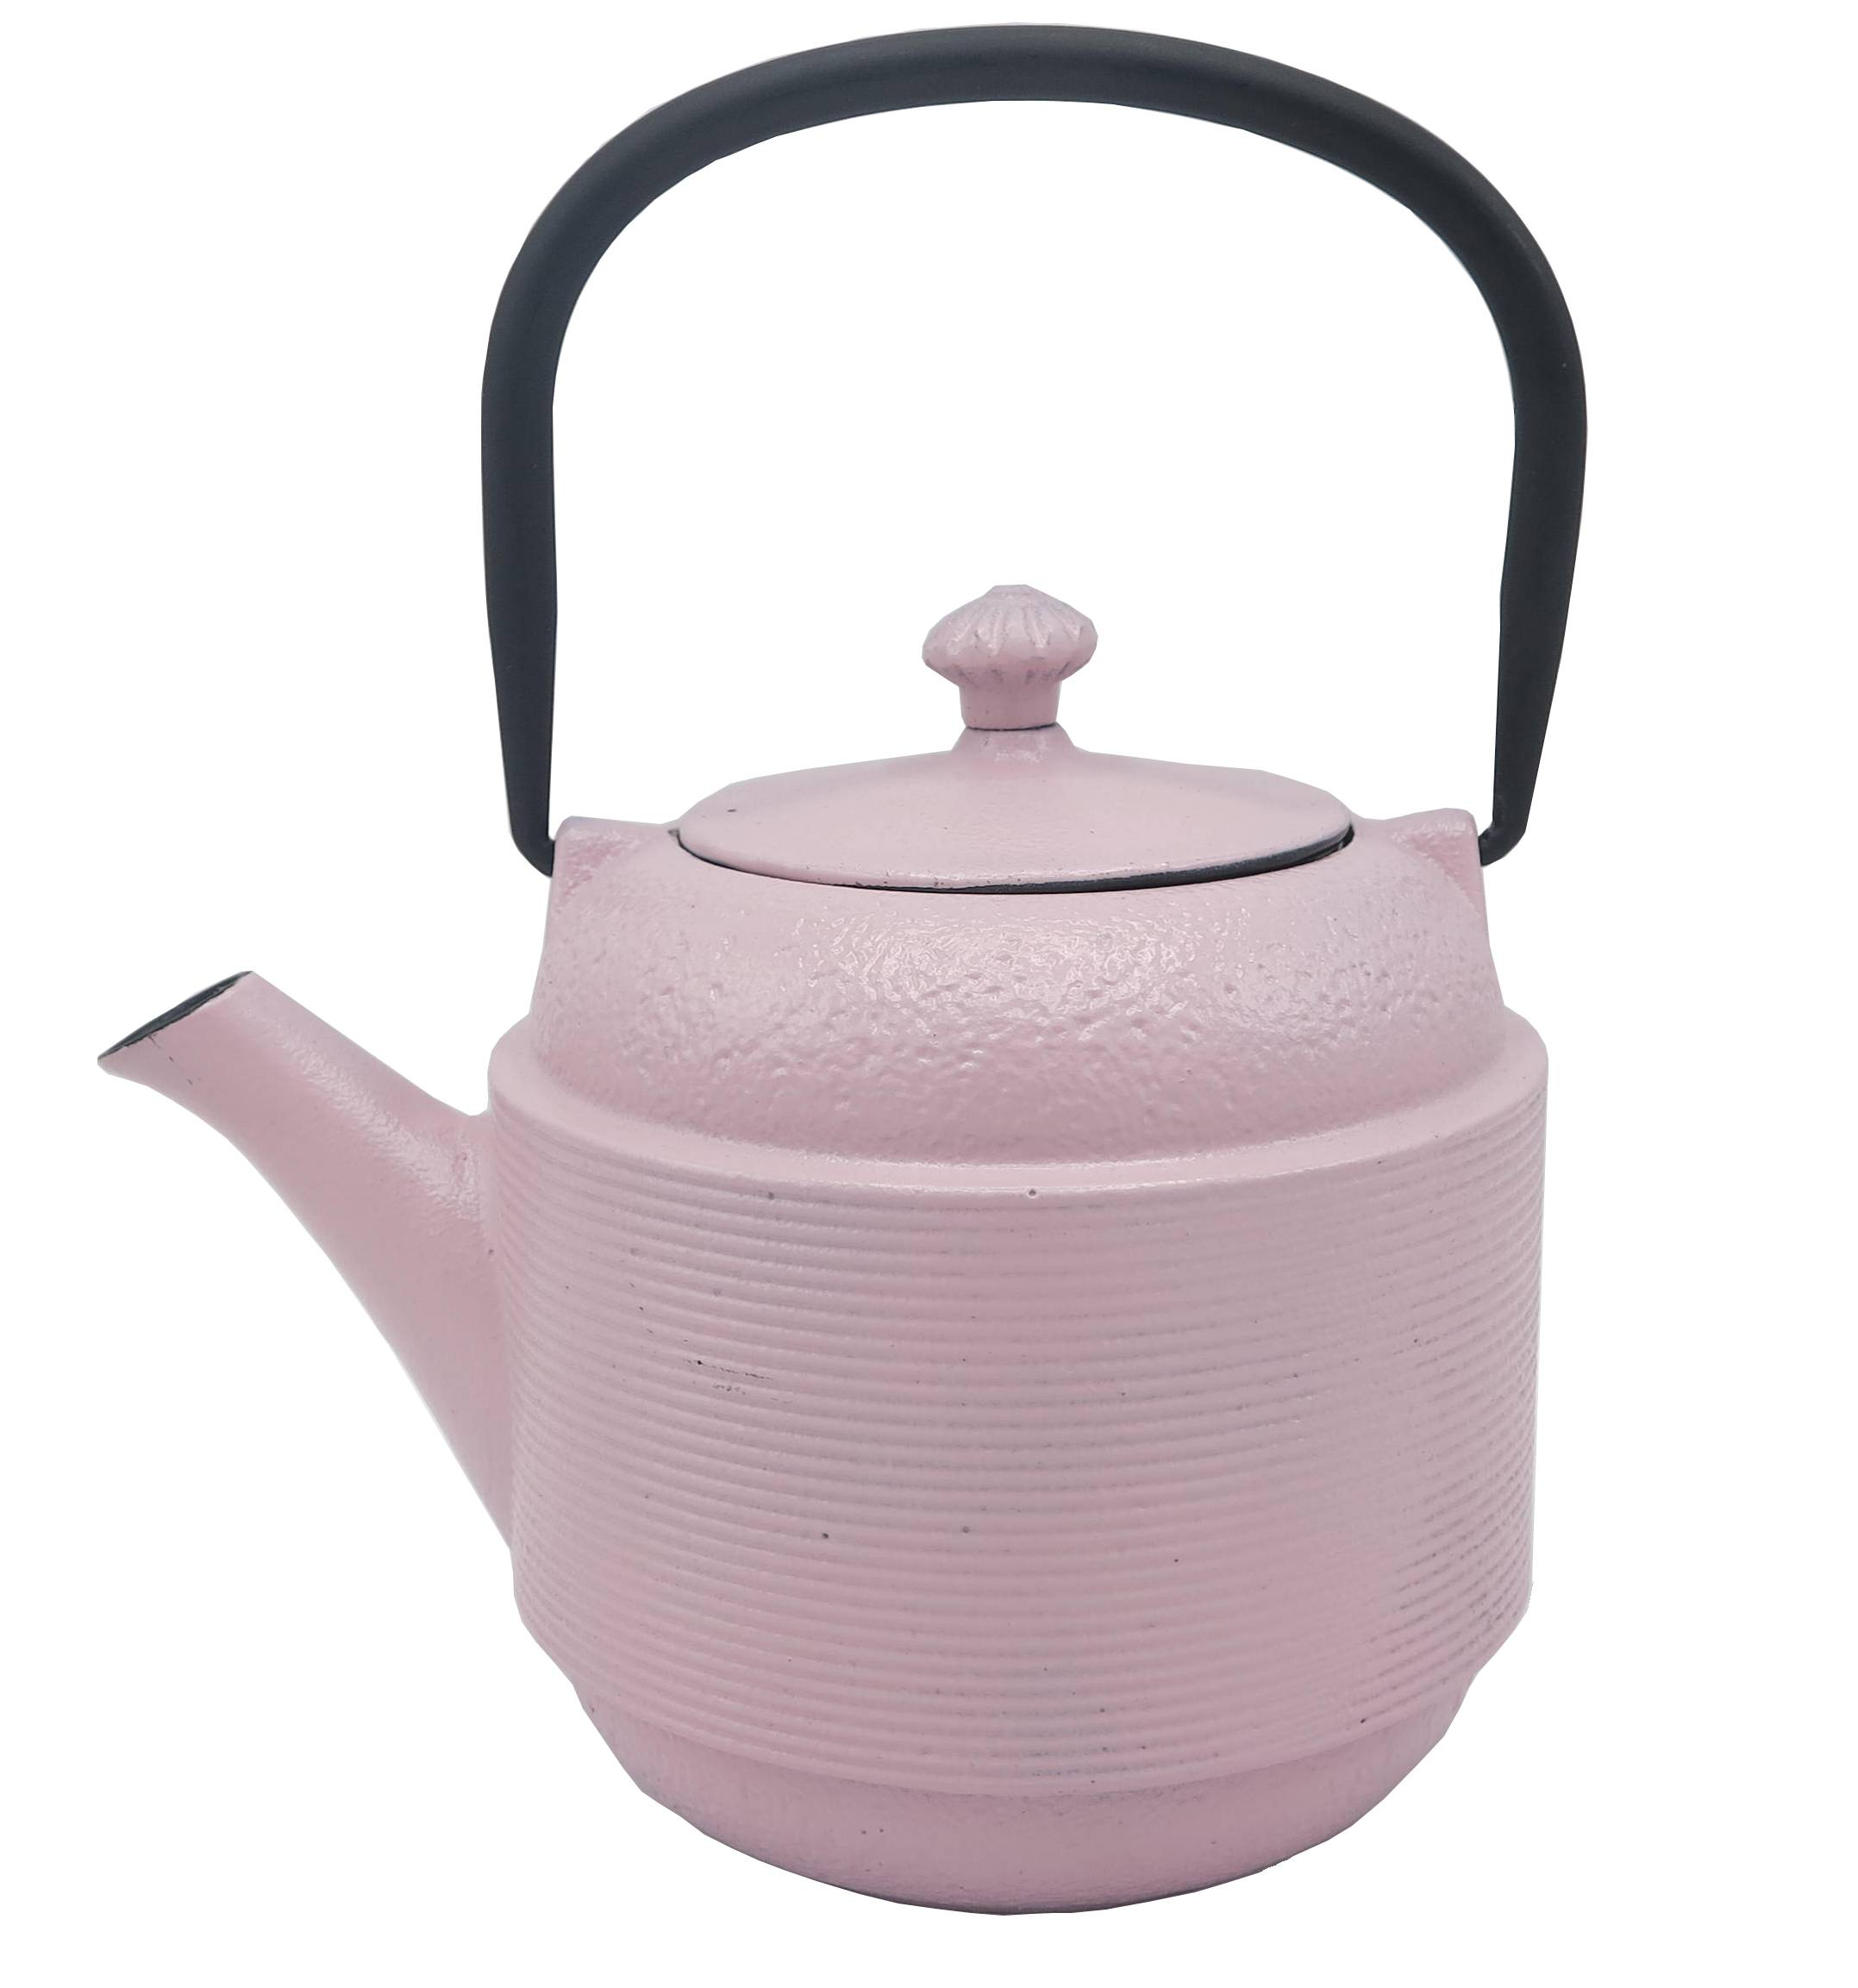 Metal Tea kettle 800ML cast iron enamel coated teapot